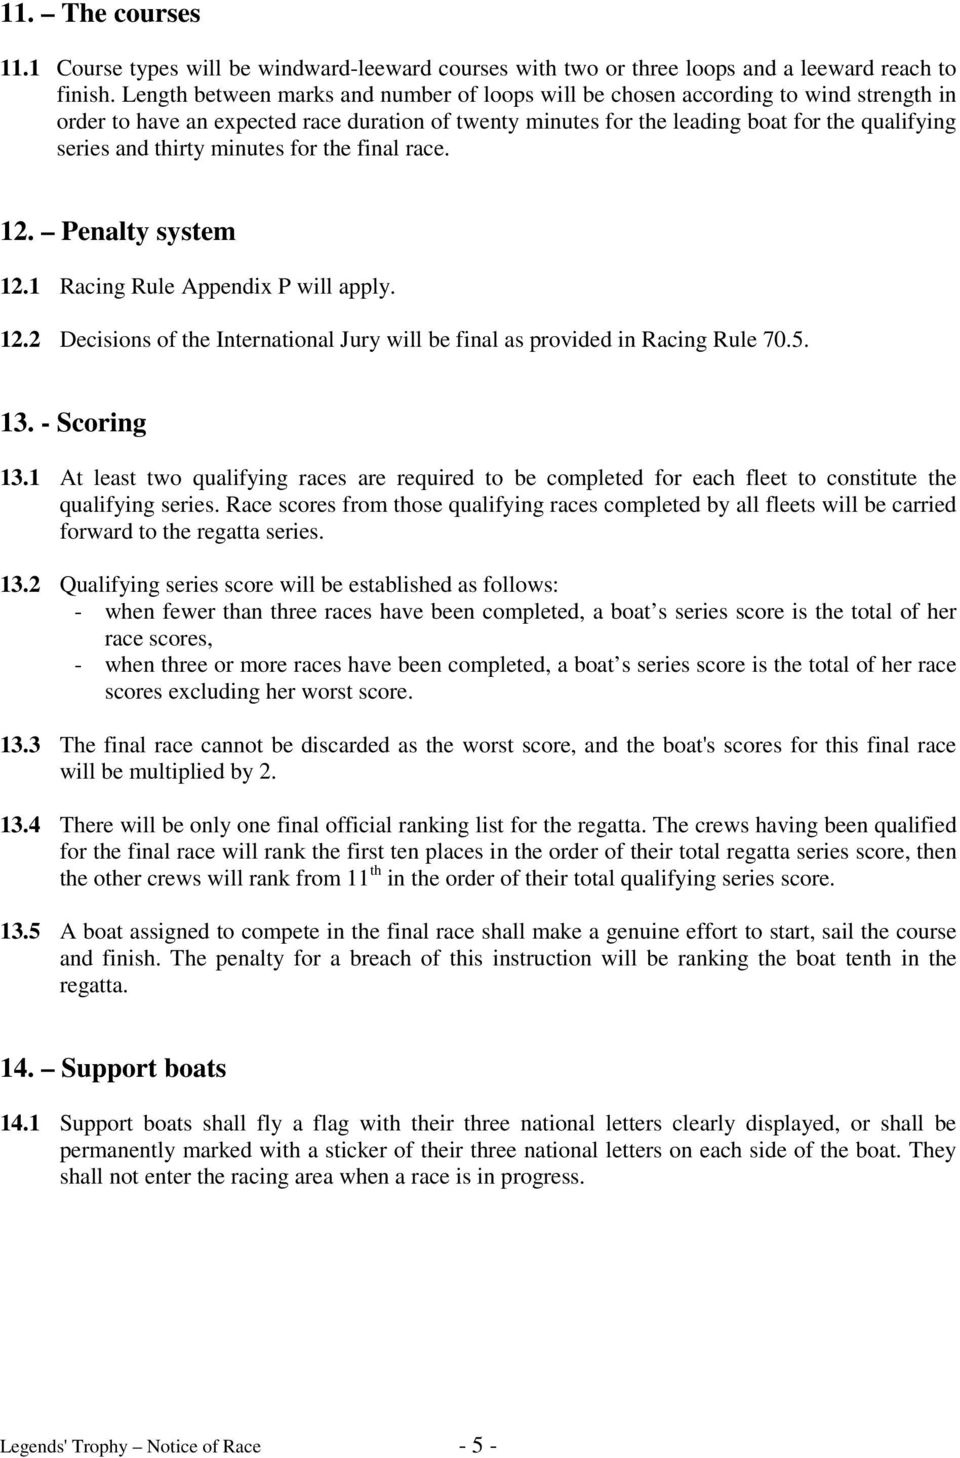 thirty minutes for the final race. 12. Penalty system 12.1 Racing Rule Appendix P will apply. 12.2 Decisions of the International Jury will be final as provided in Racing Rule 70.5. 13. - Scoring 13.